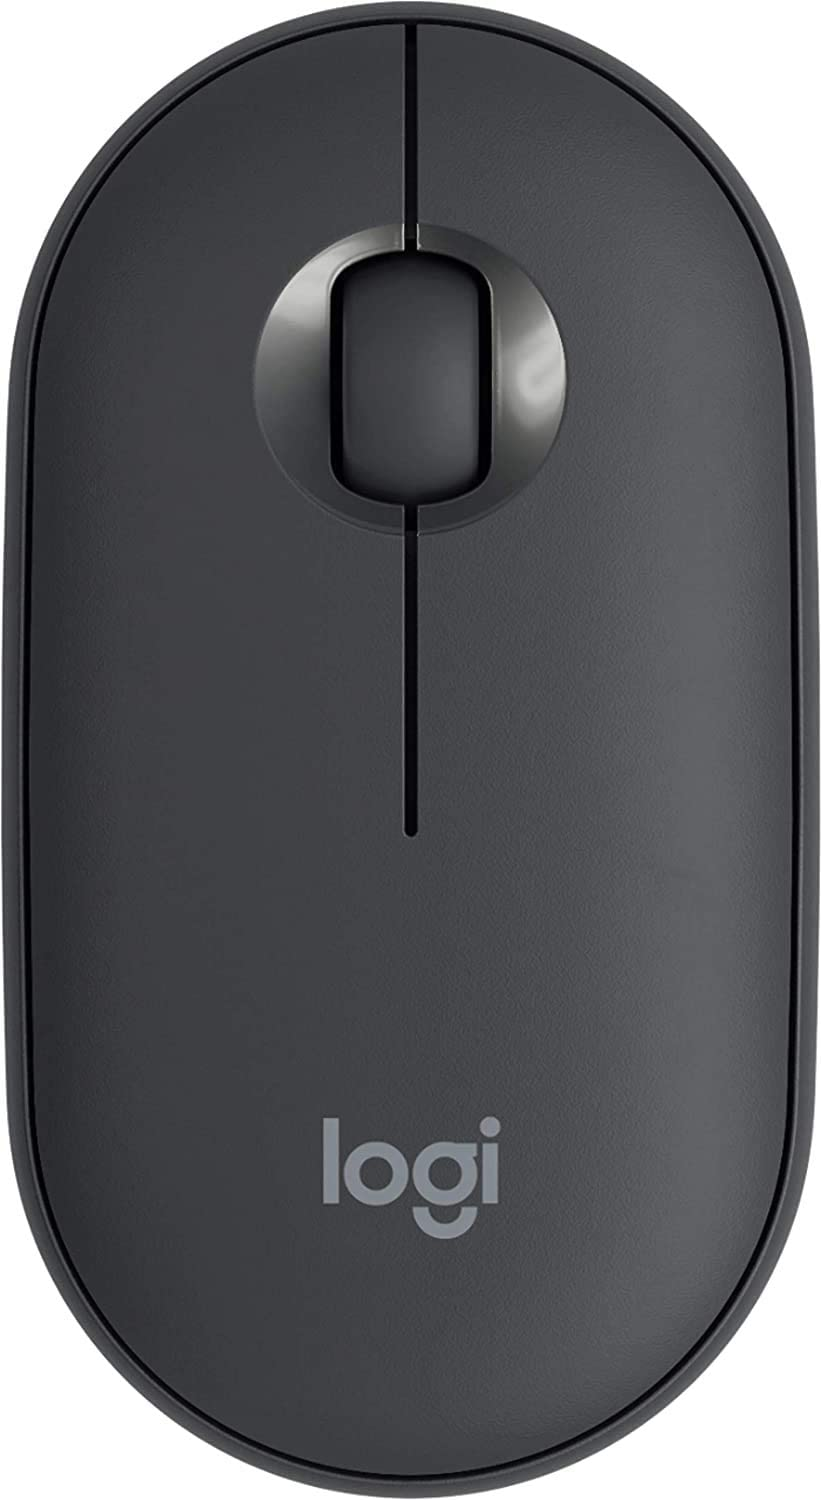 LOGI Pebble M350 Portable Wireless Mouse with Bluetooth or 2.4 GHz Receiver, Silent, Slim Computer Mouse with Quiet Click for Laptop, Notebook, PC and Mac - Graphite - Asian Version